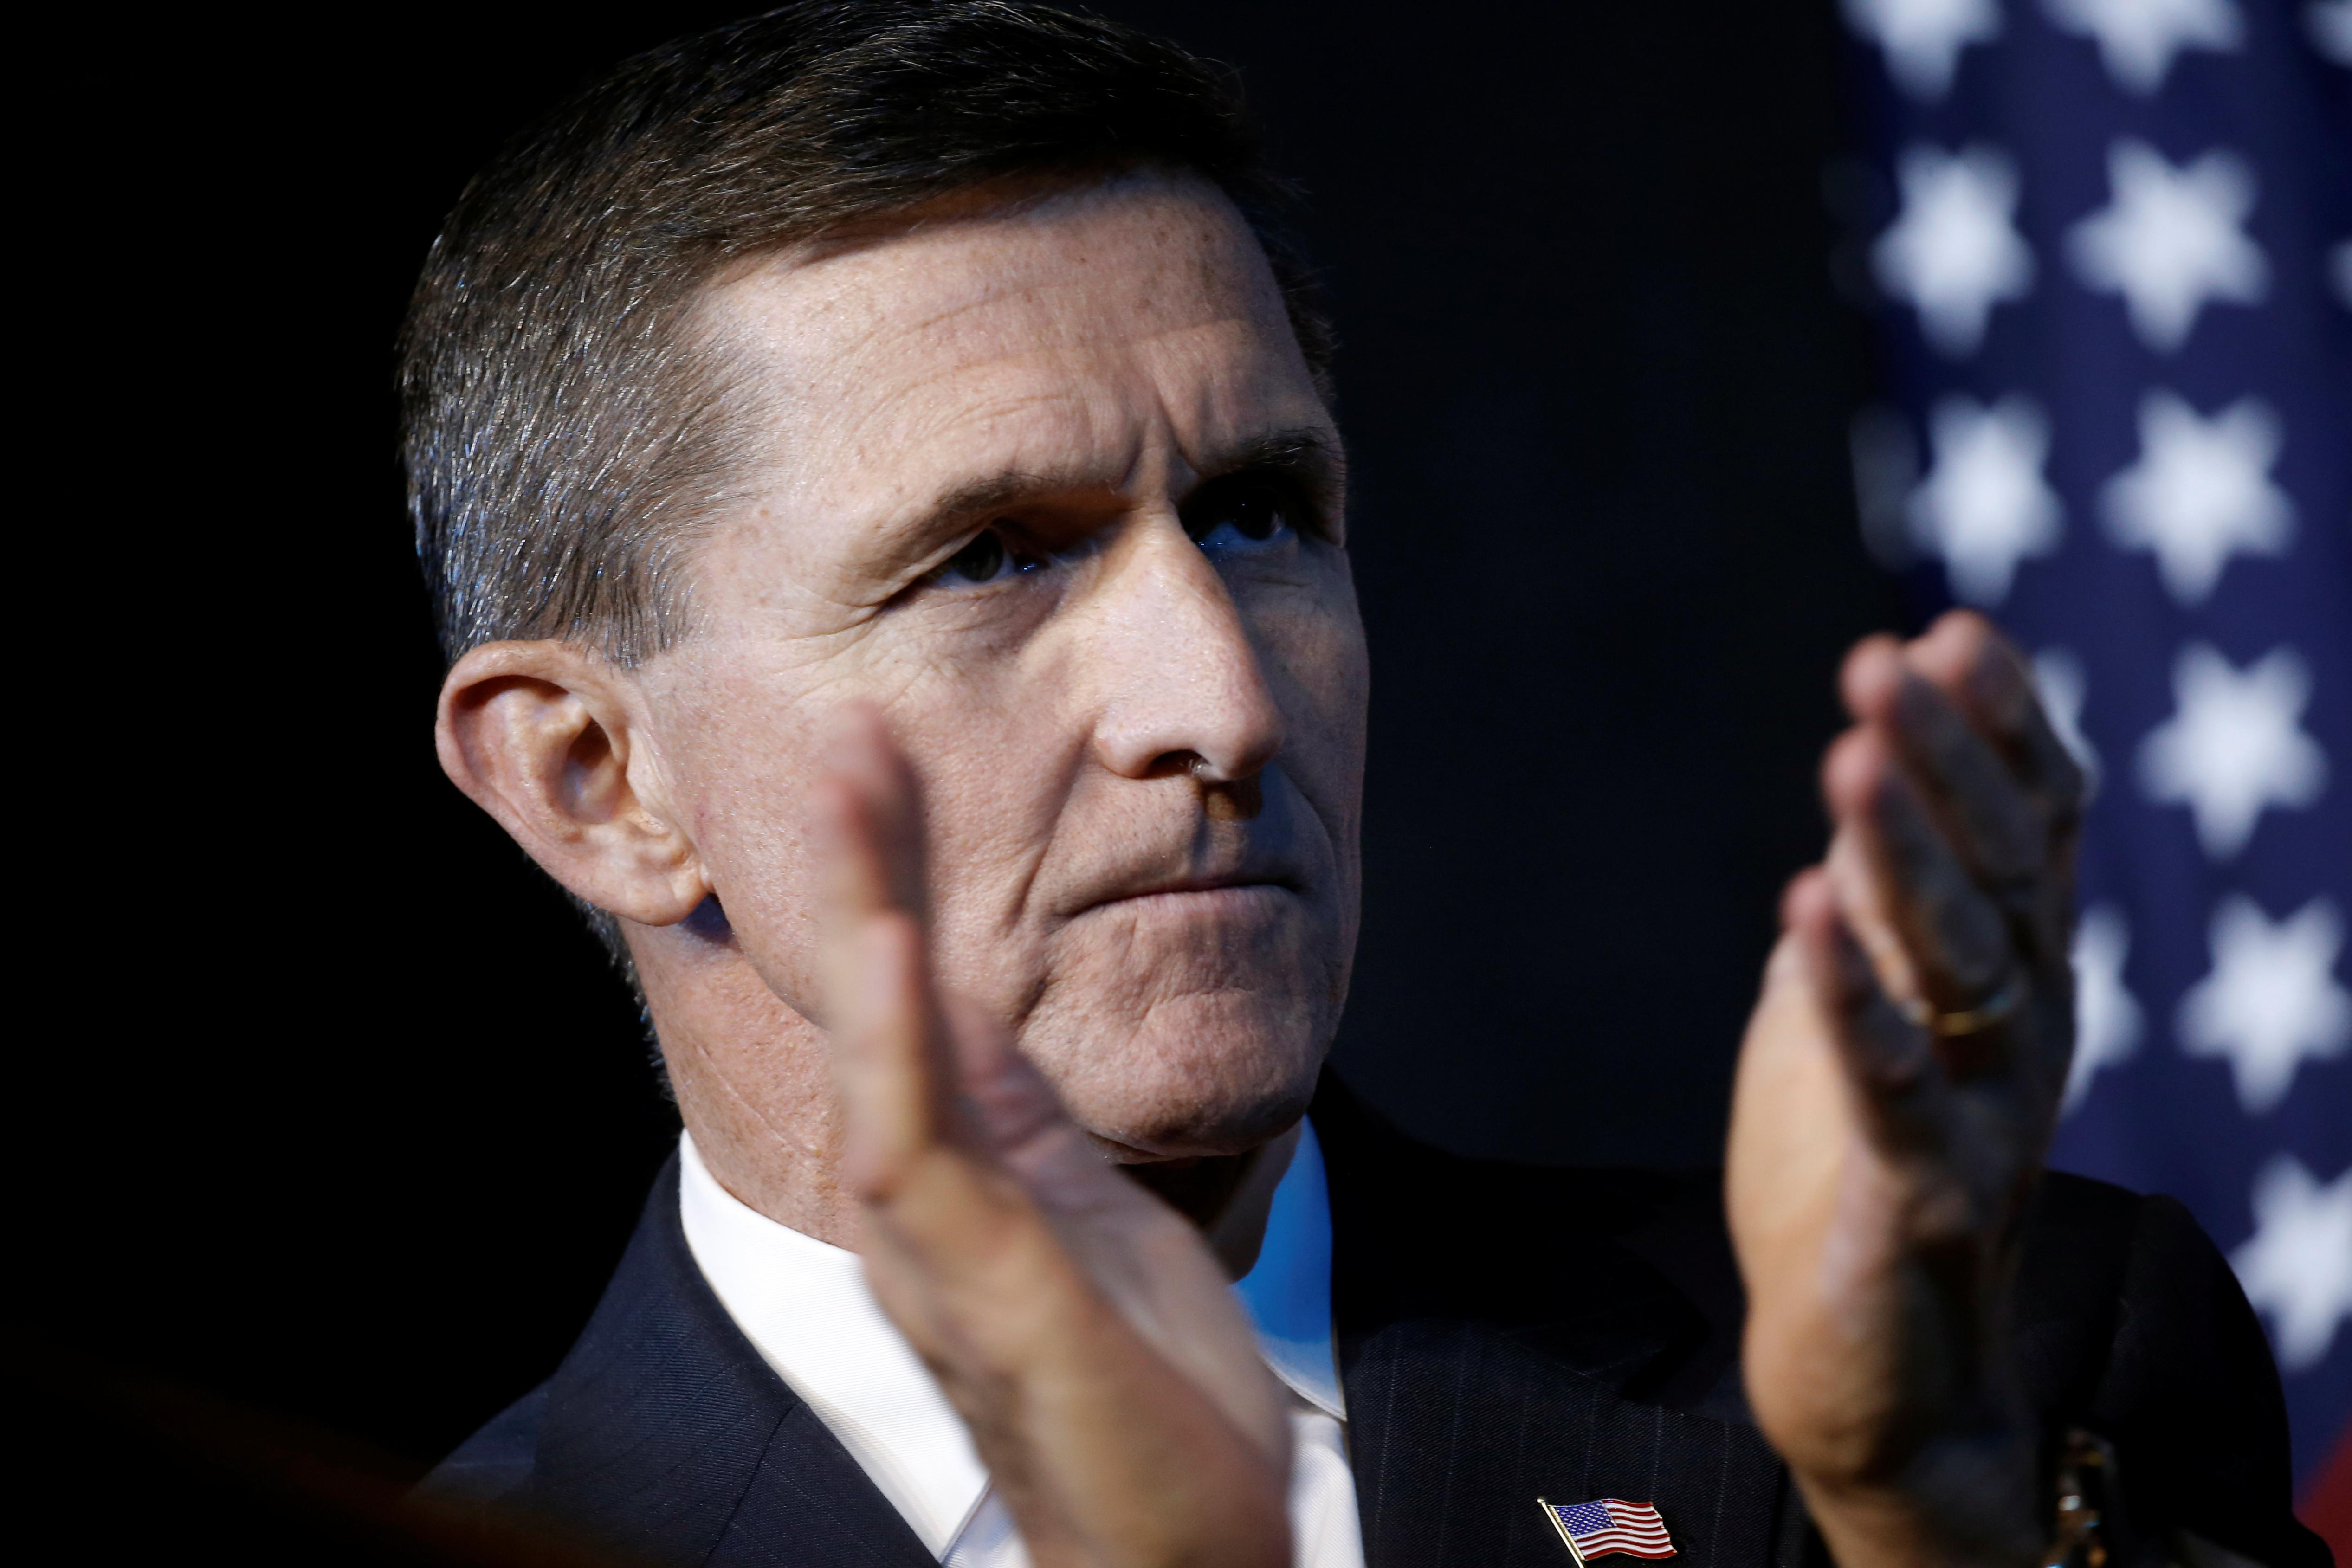 Mueller says Flynn 'substantially' aided probe of possible links between Russia, Trump campaign